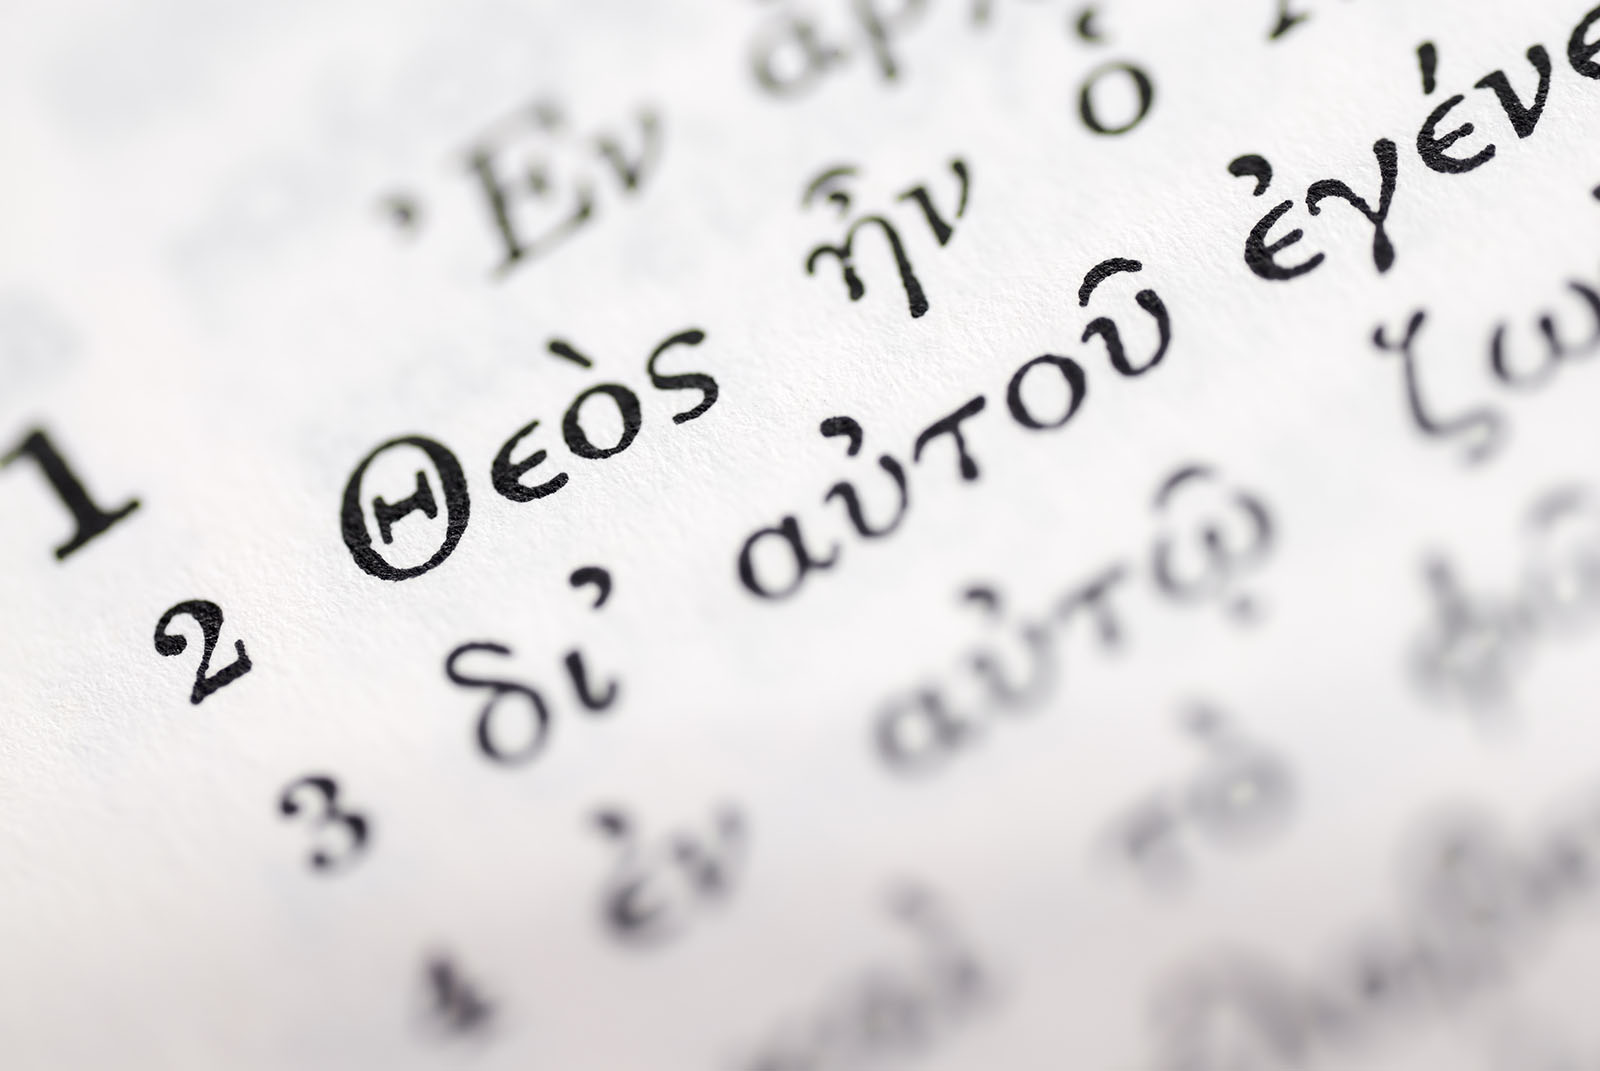 5 Important Philosophical-Apologetics Terms in the New Testament